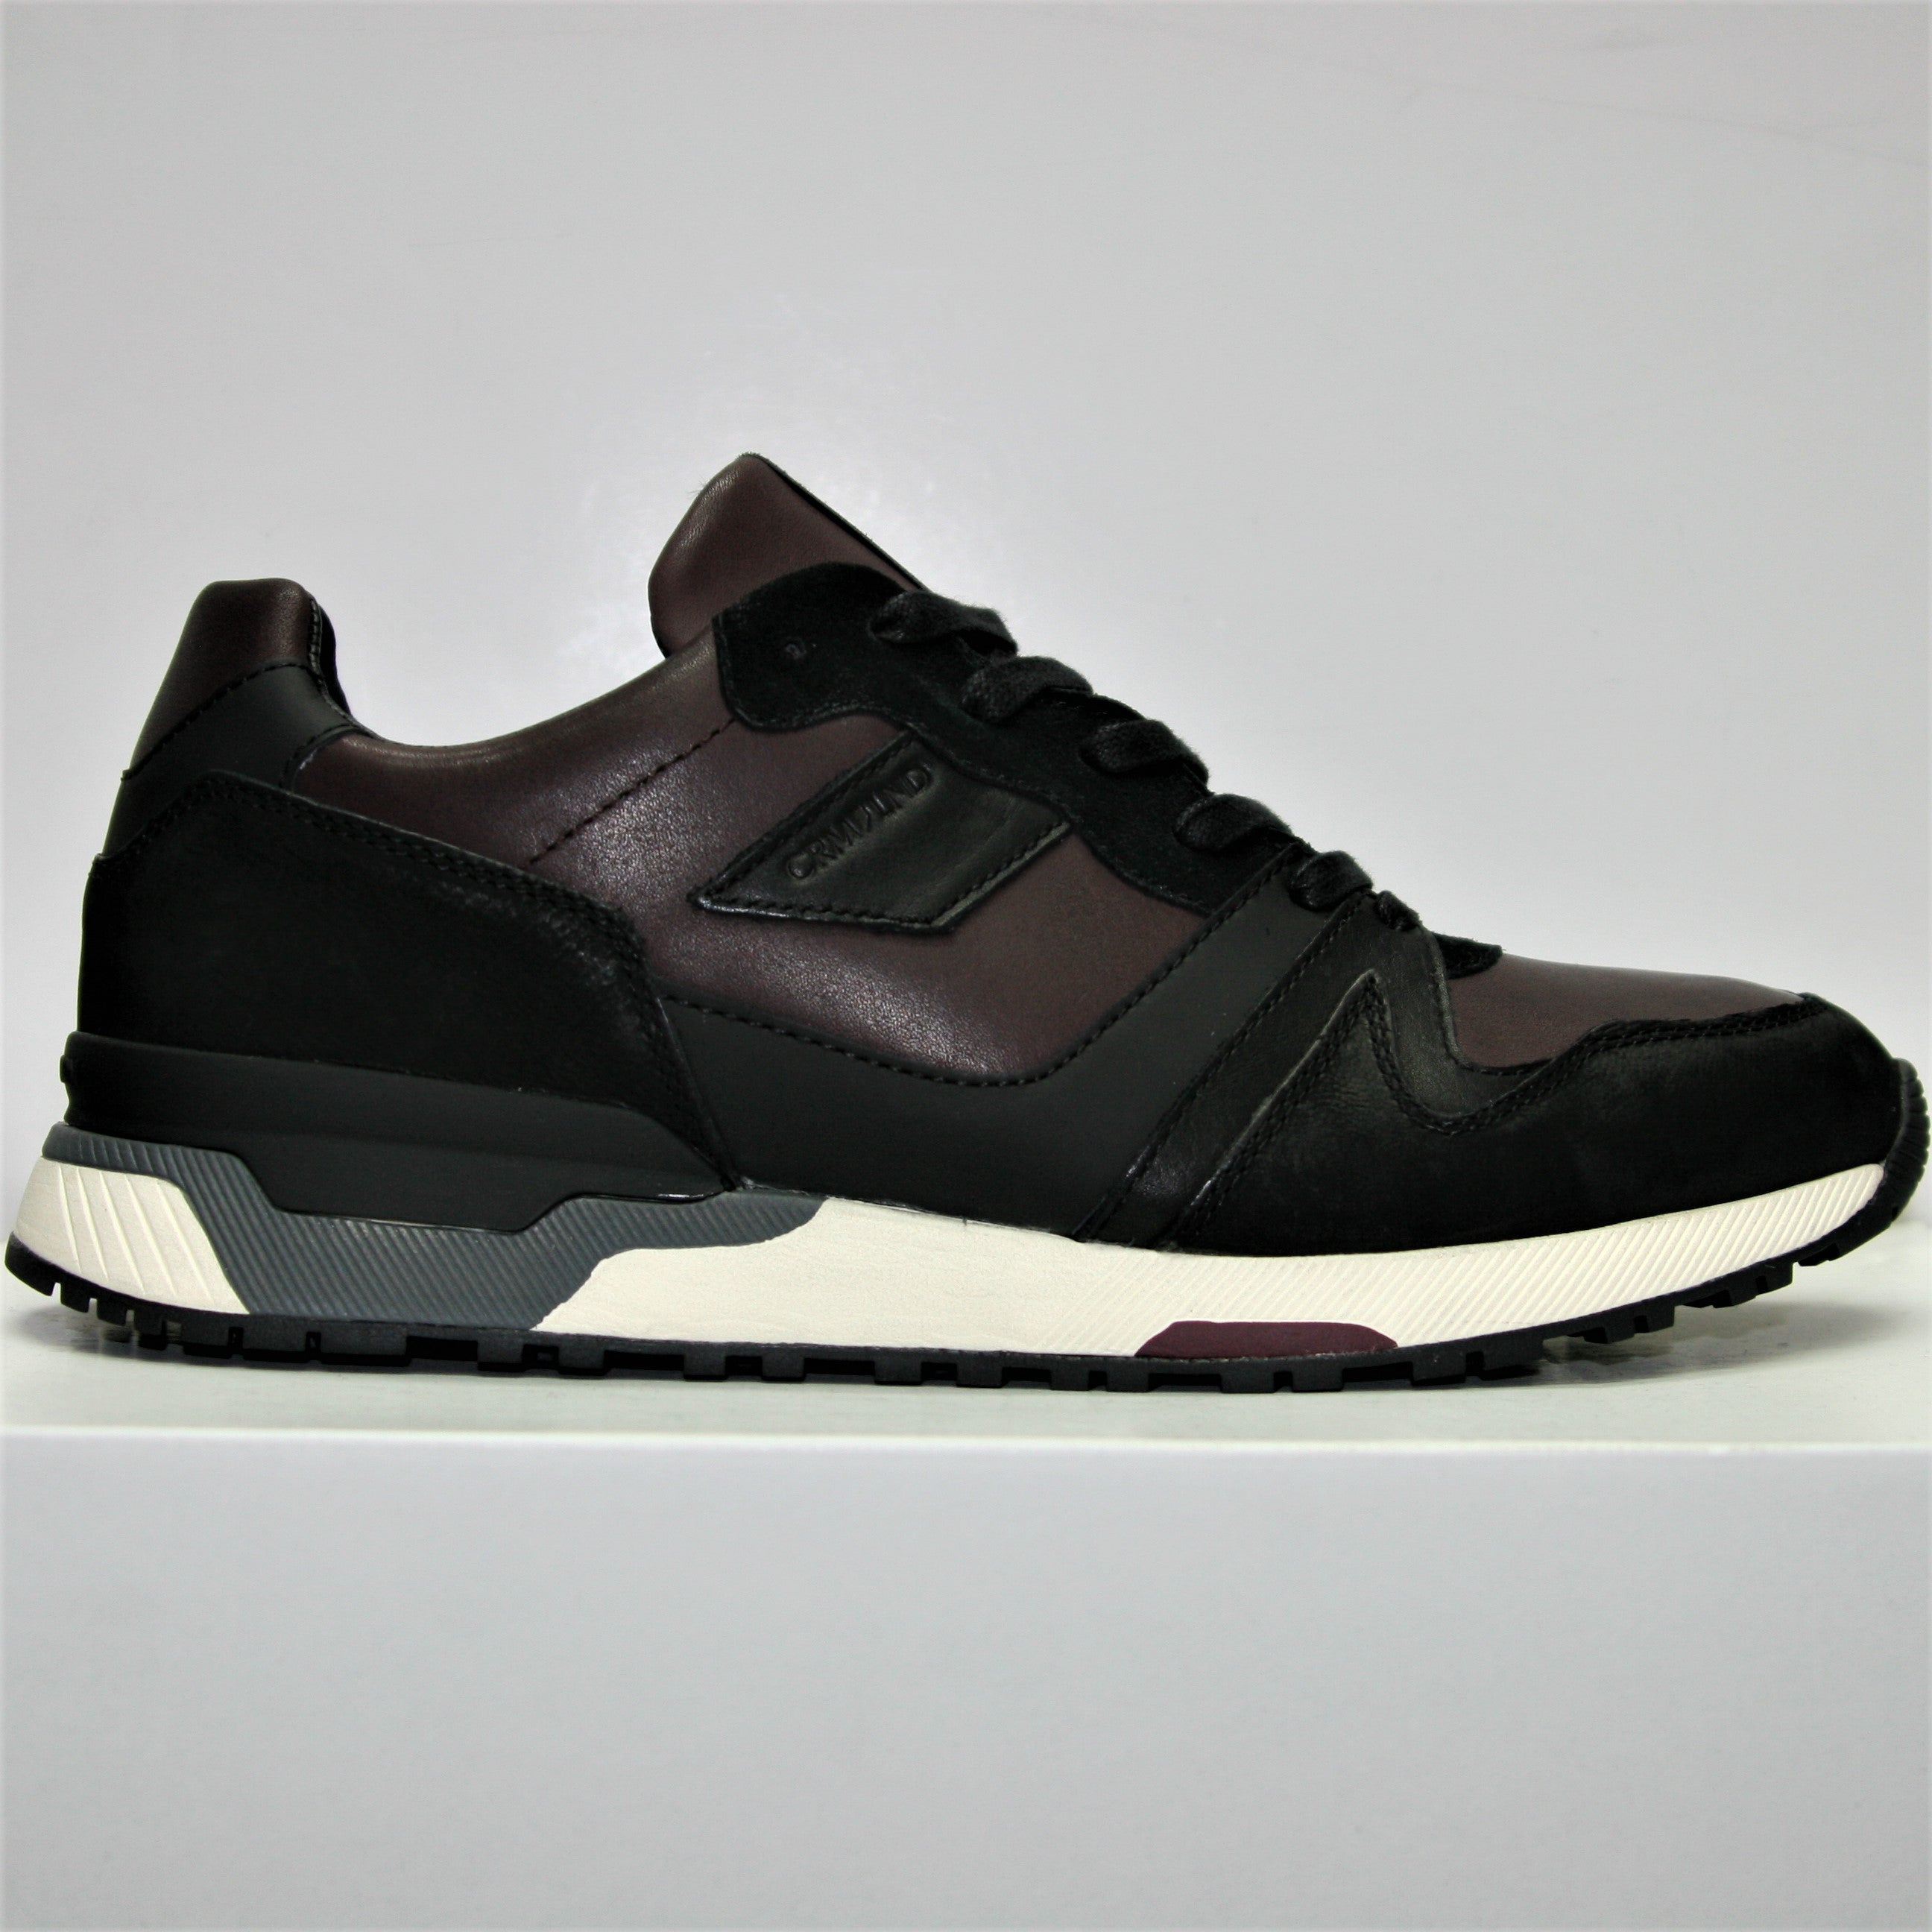 5d8e26fb3521a6 Crime London Escape Burgundy Trainer – Zebra Menswear